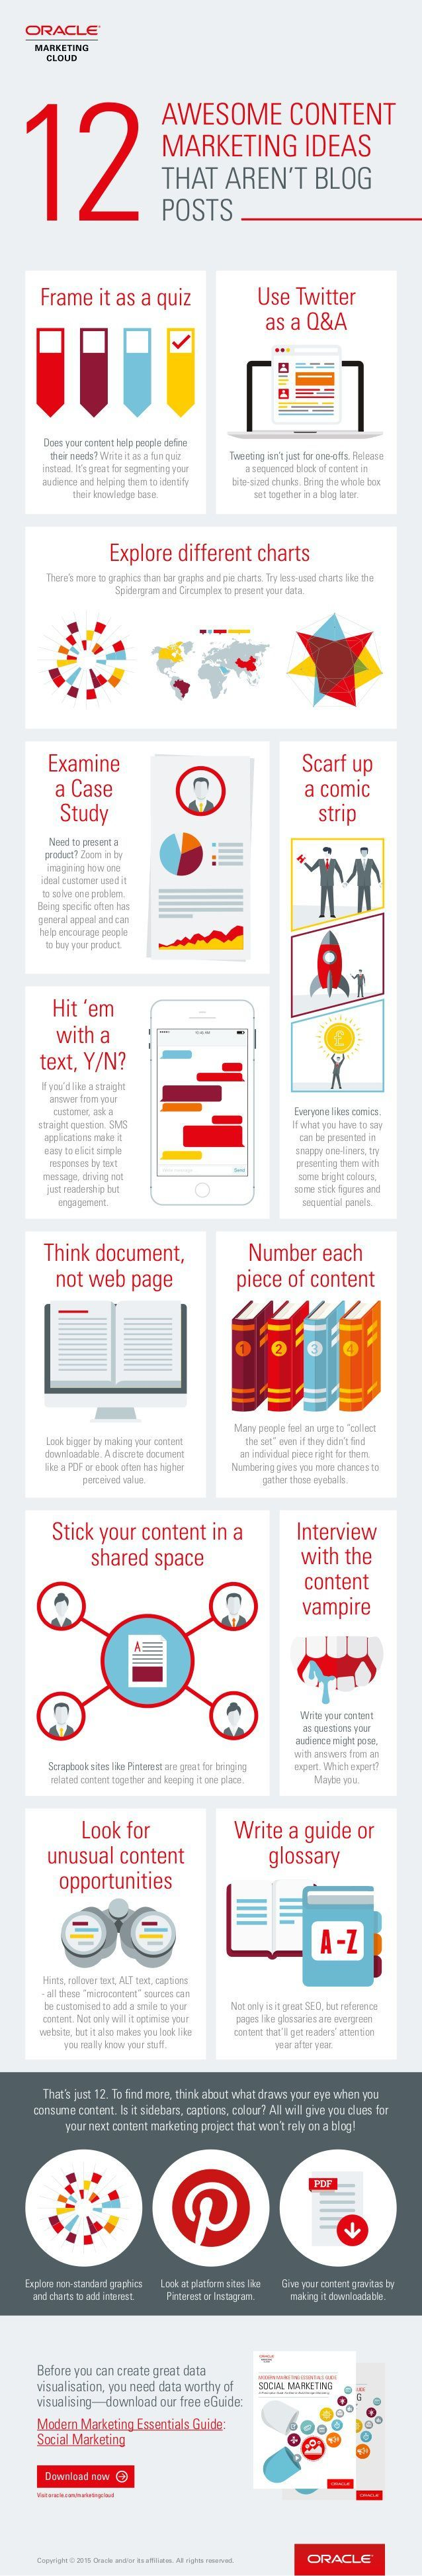 Awesome Content Marketing Ideas That Aren't Blog Posts #infographic #marketing